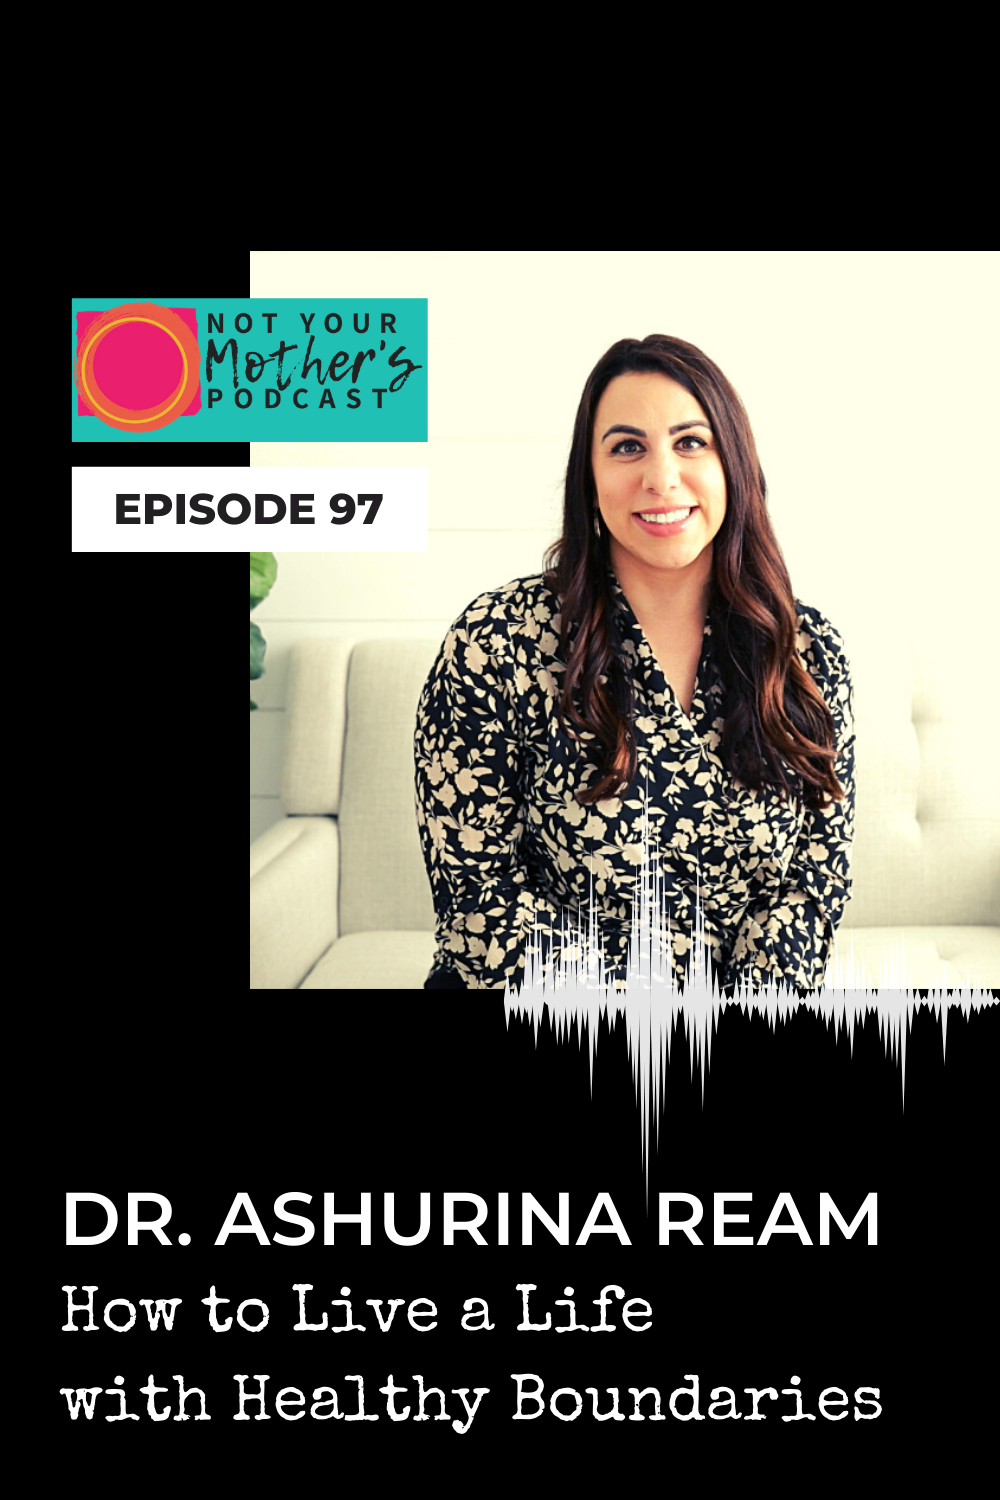 How to Live a Life with Healthy Boundaries with Dr. Ashurina Ream- PIN